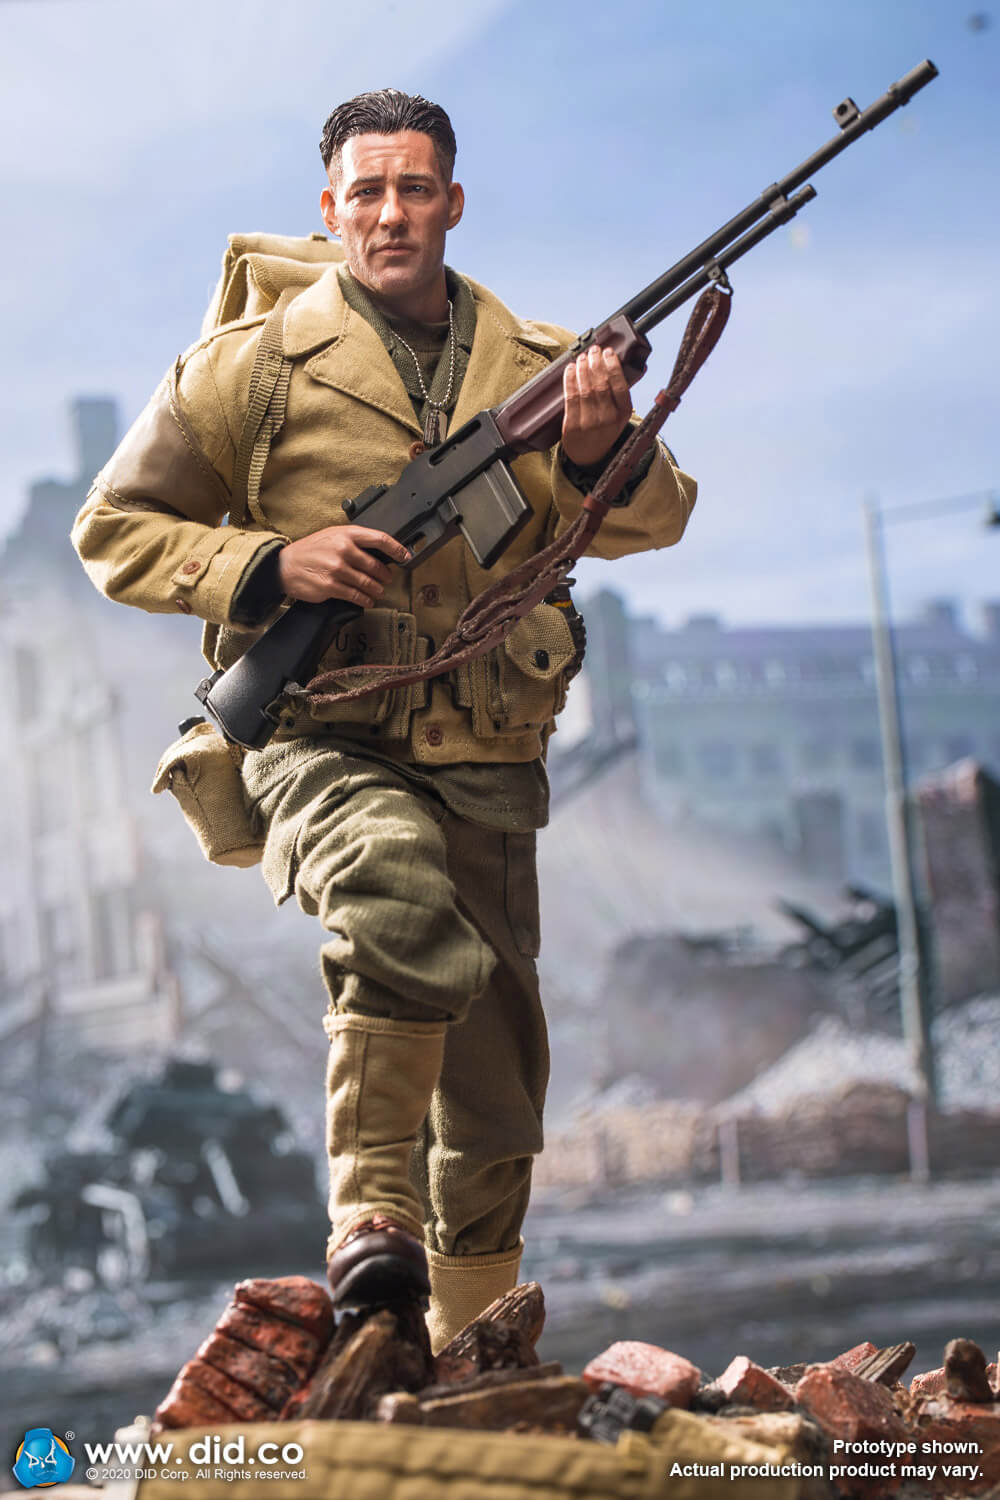 male - NEW PRODUCT: DiD: A80141 WWII US 2nd Ranger Battalion Private First Class Reiben 1/6 scale figure Did-pr18